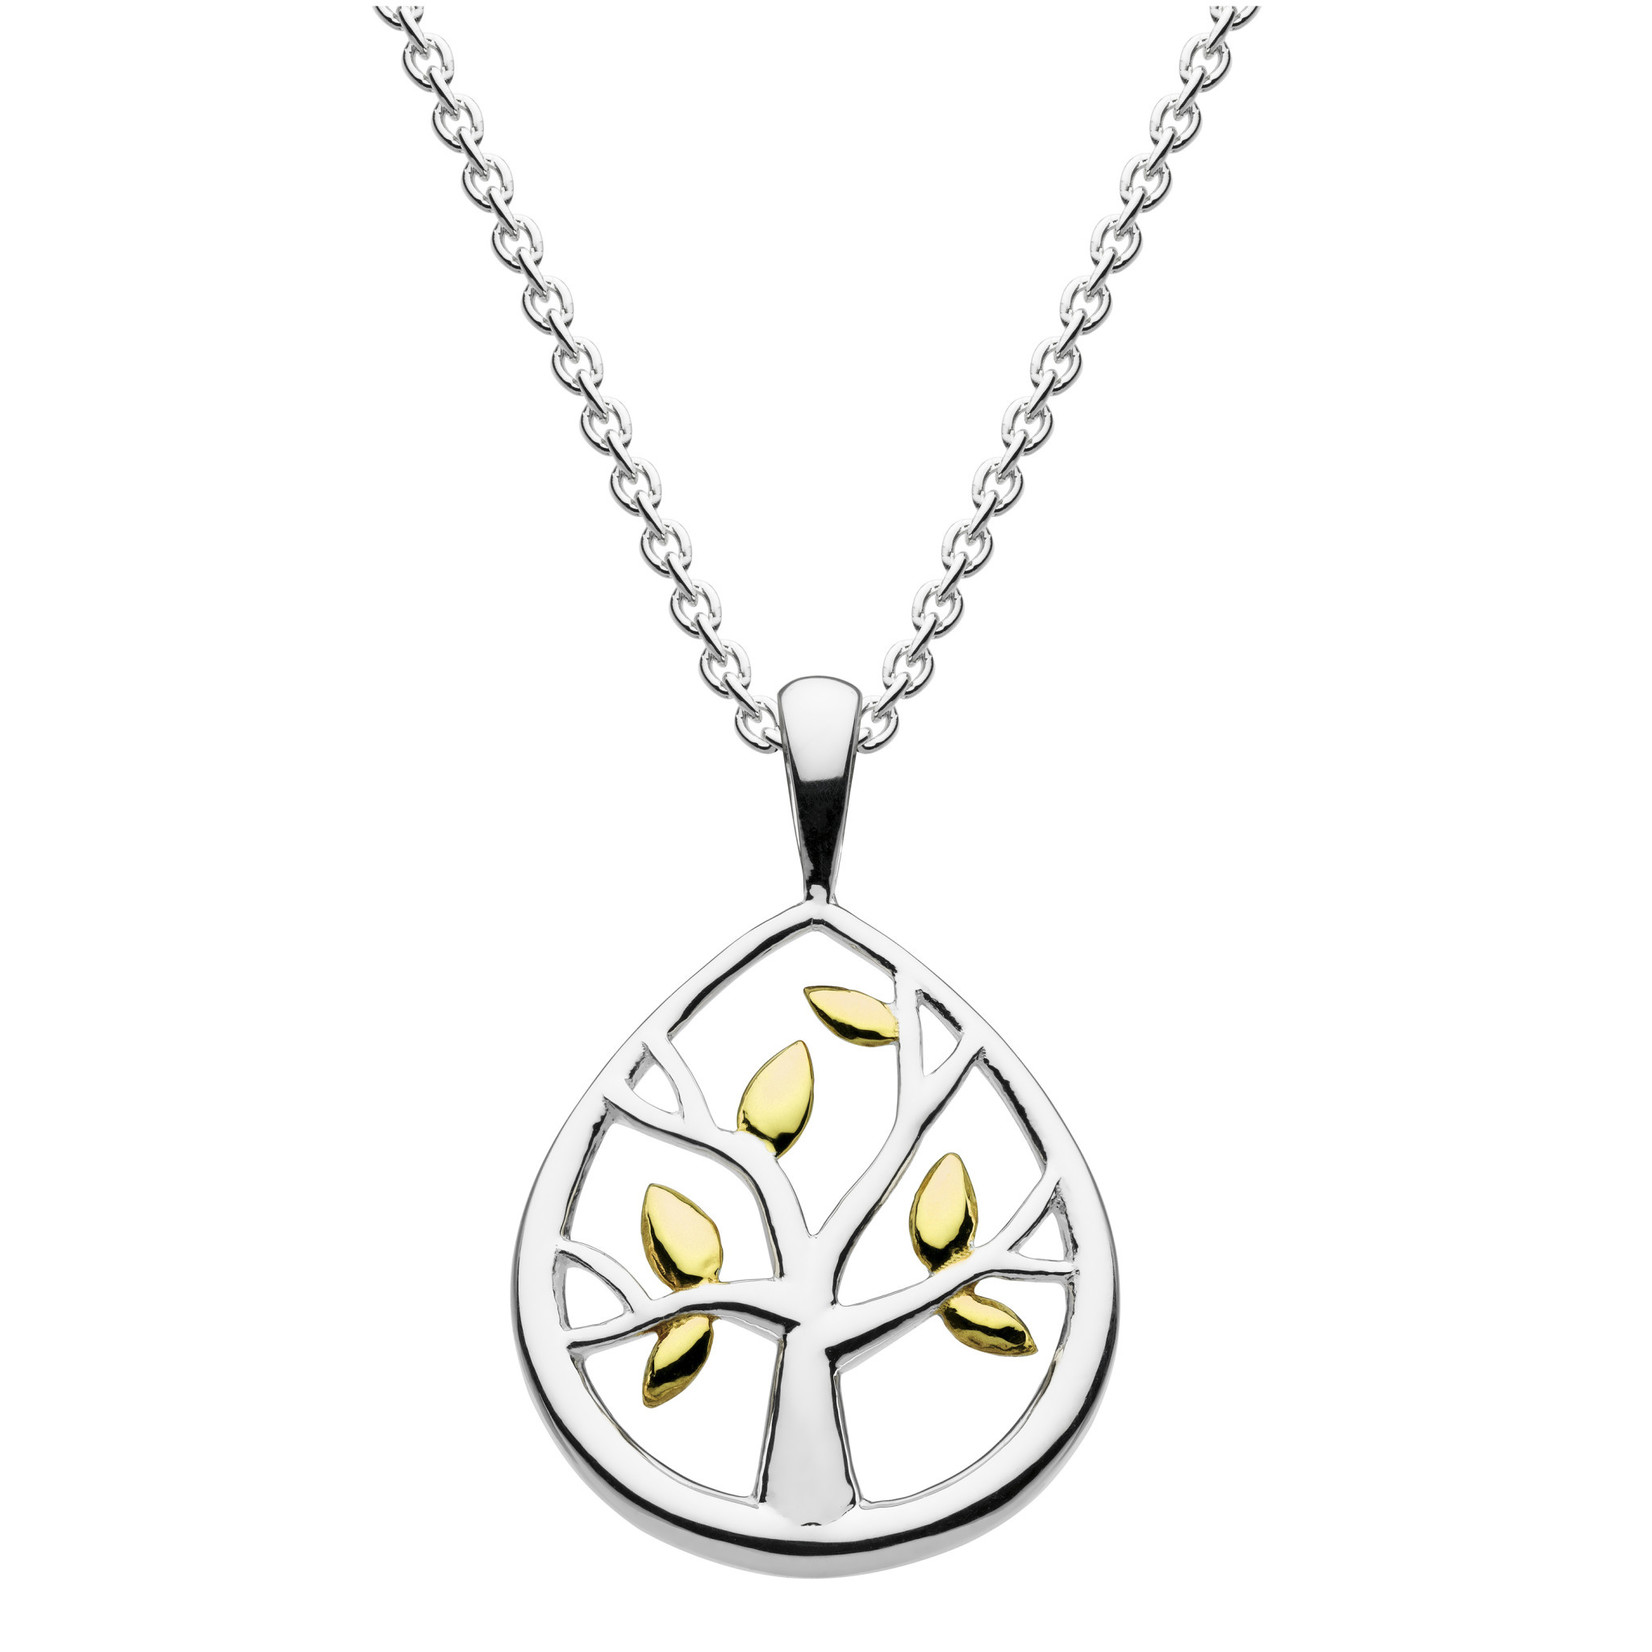 SS/Dew Gold Plate Leafed Tree Pendant